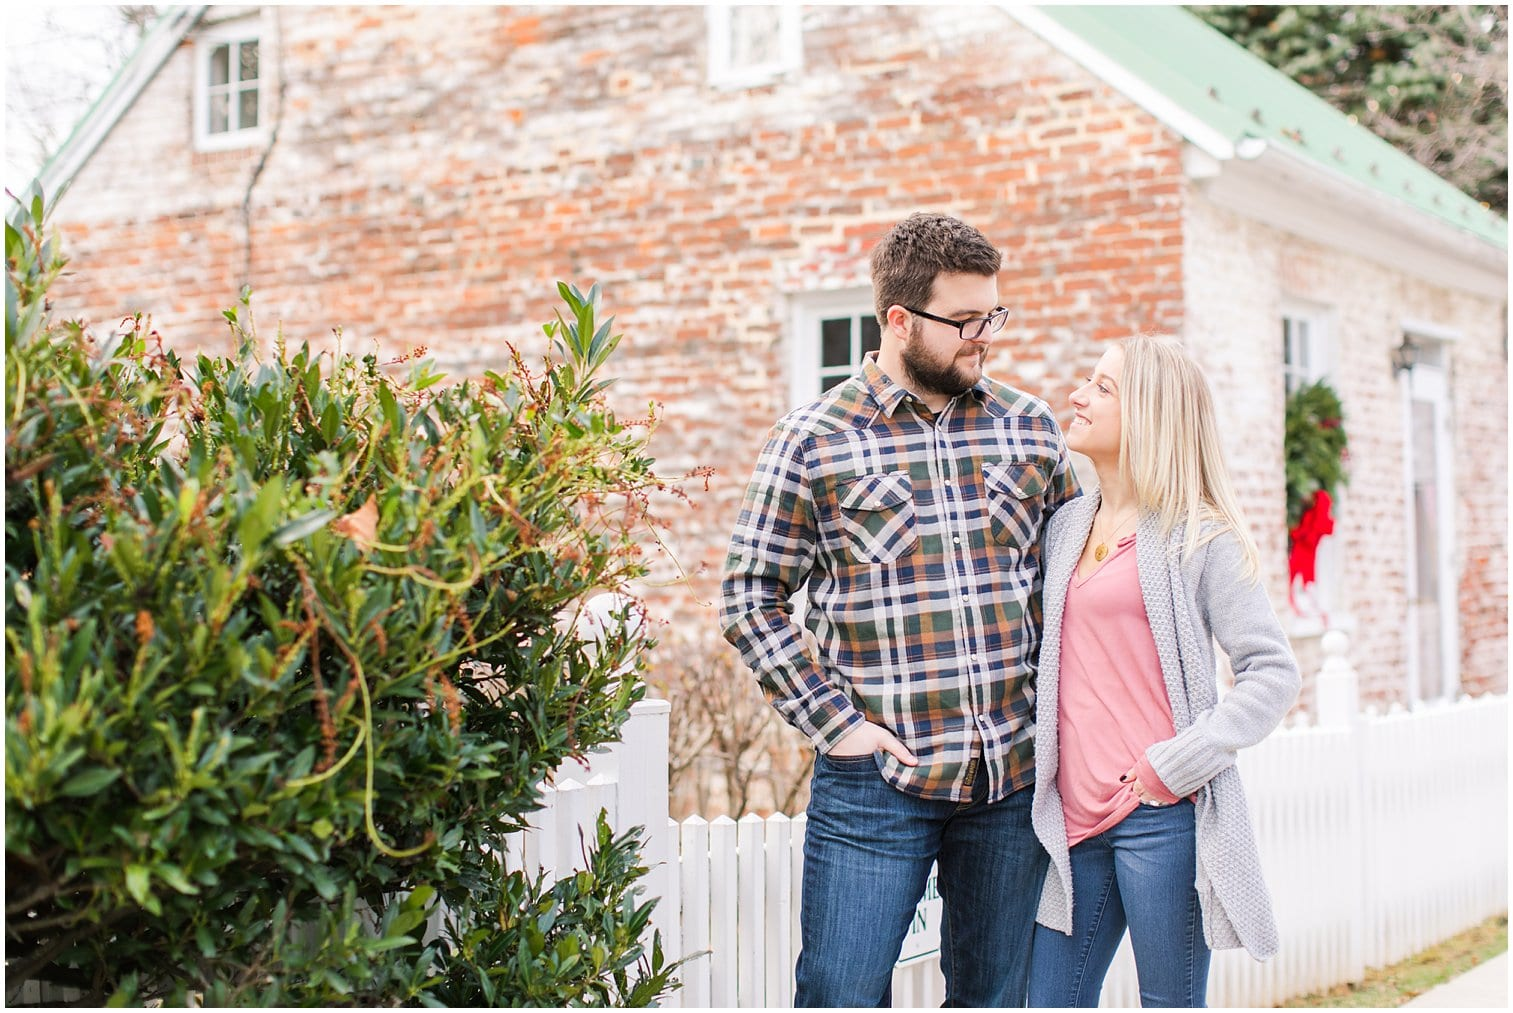 Downtown Middleburg Engagement Photos Virginia Wedding Photographer Megan Kelsey Photography Blair & Mike-62.jpg